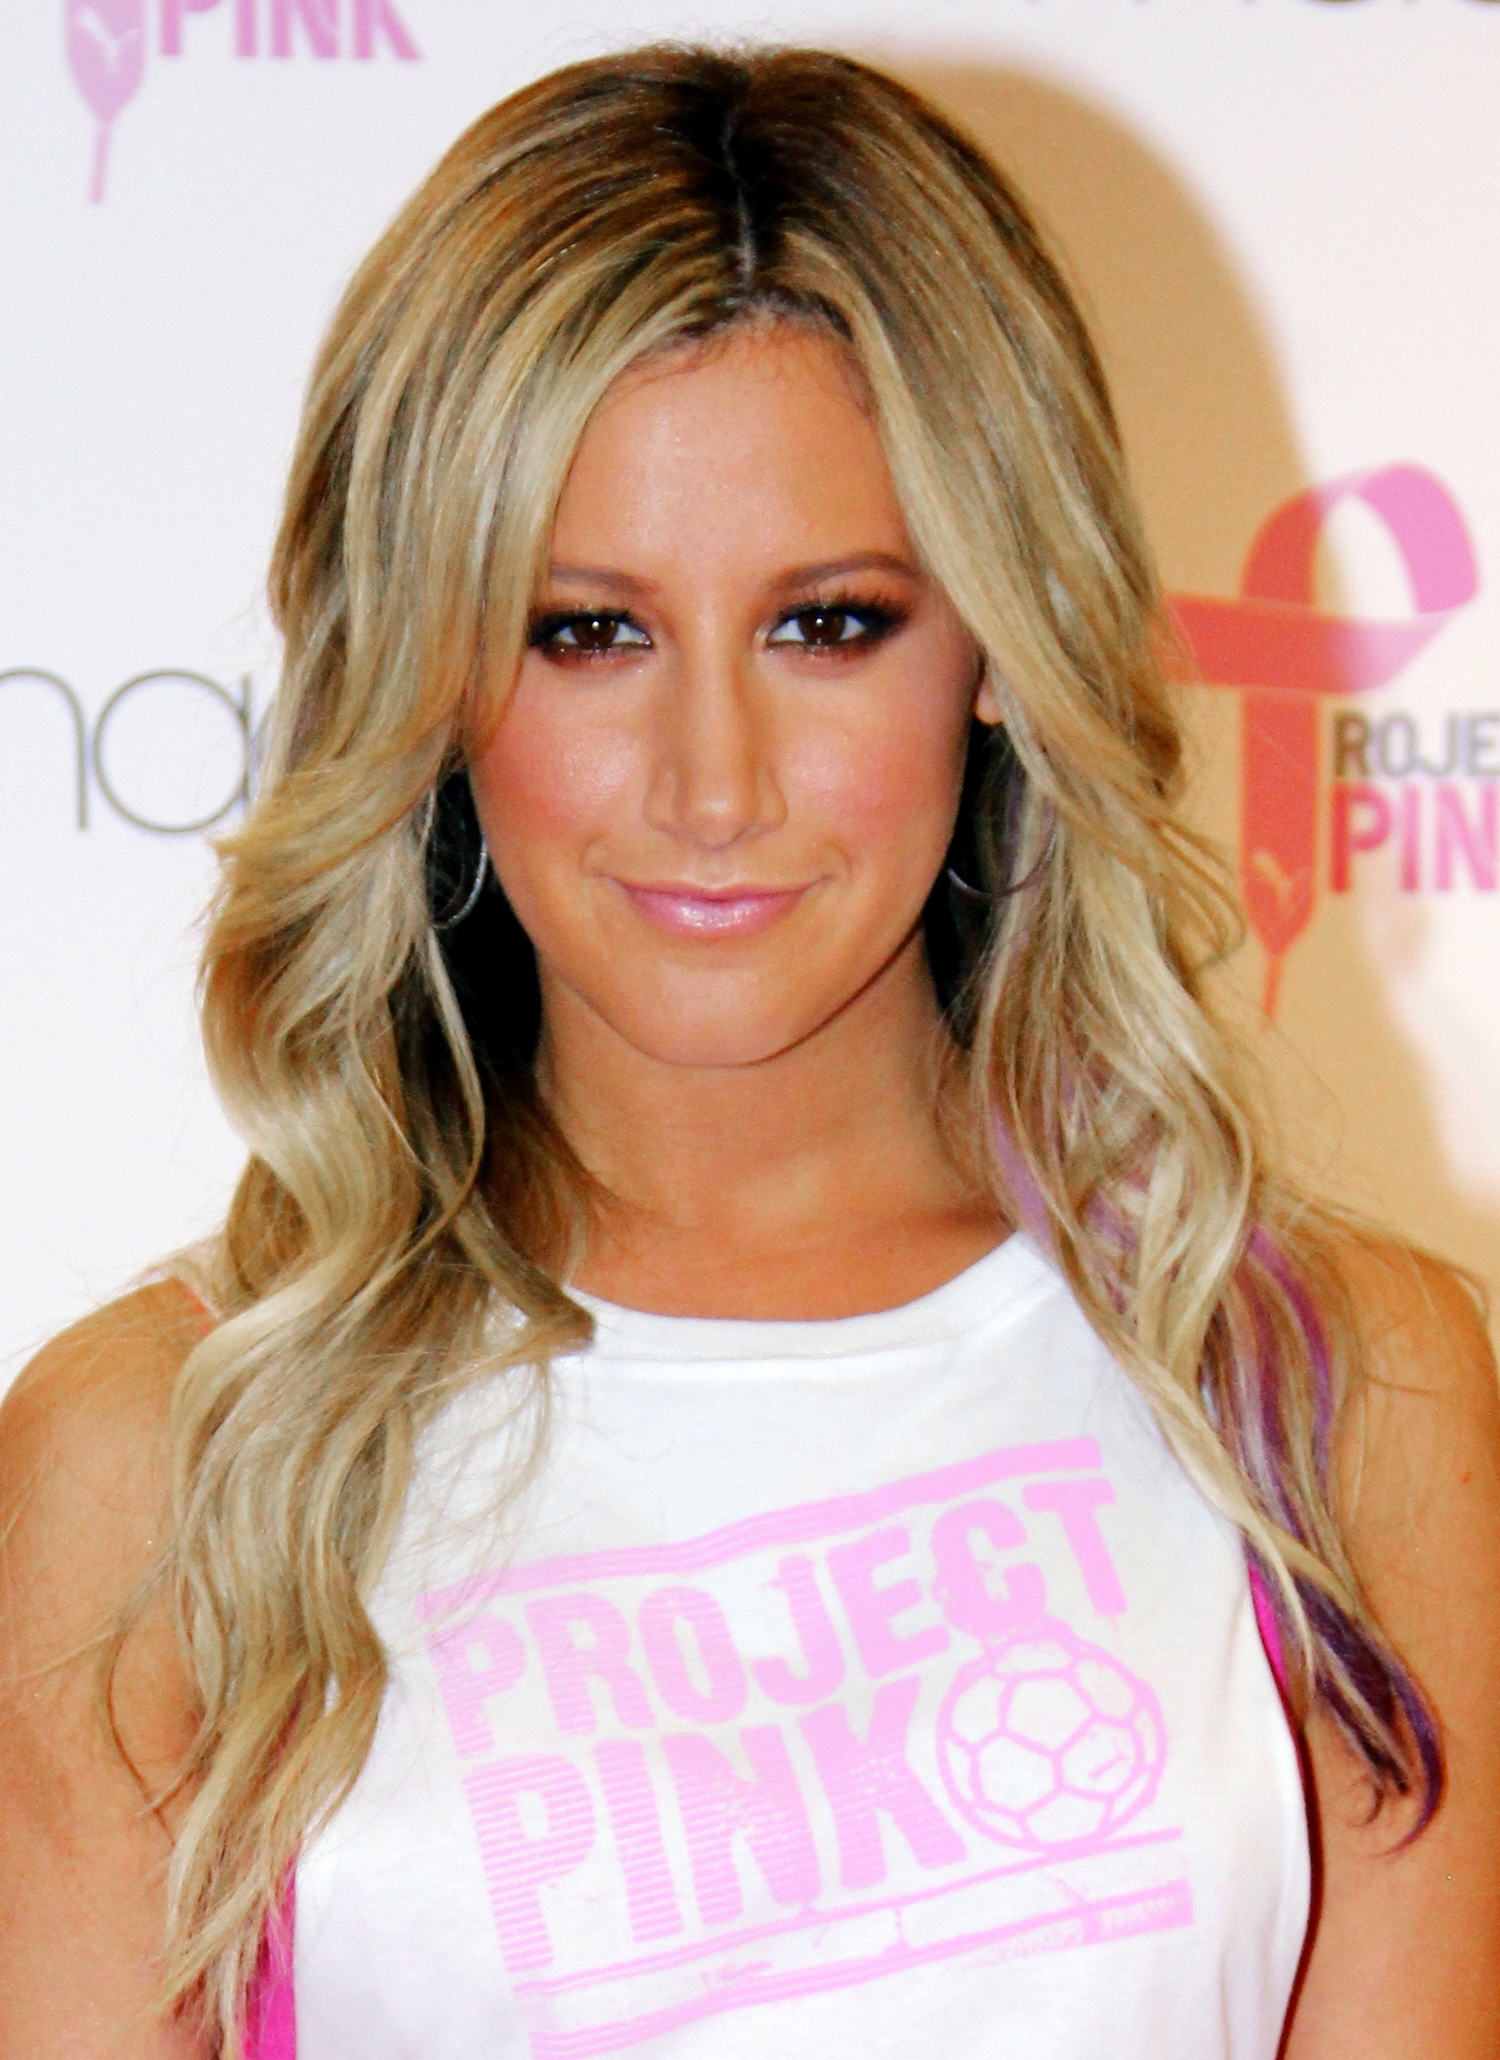 http://upload.wikimedia.org/wikipedia/commons/b/b9/Ashley_Tisdale_6,_2012.jpg